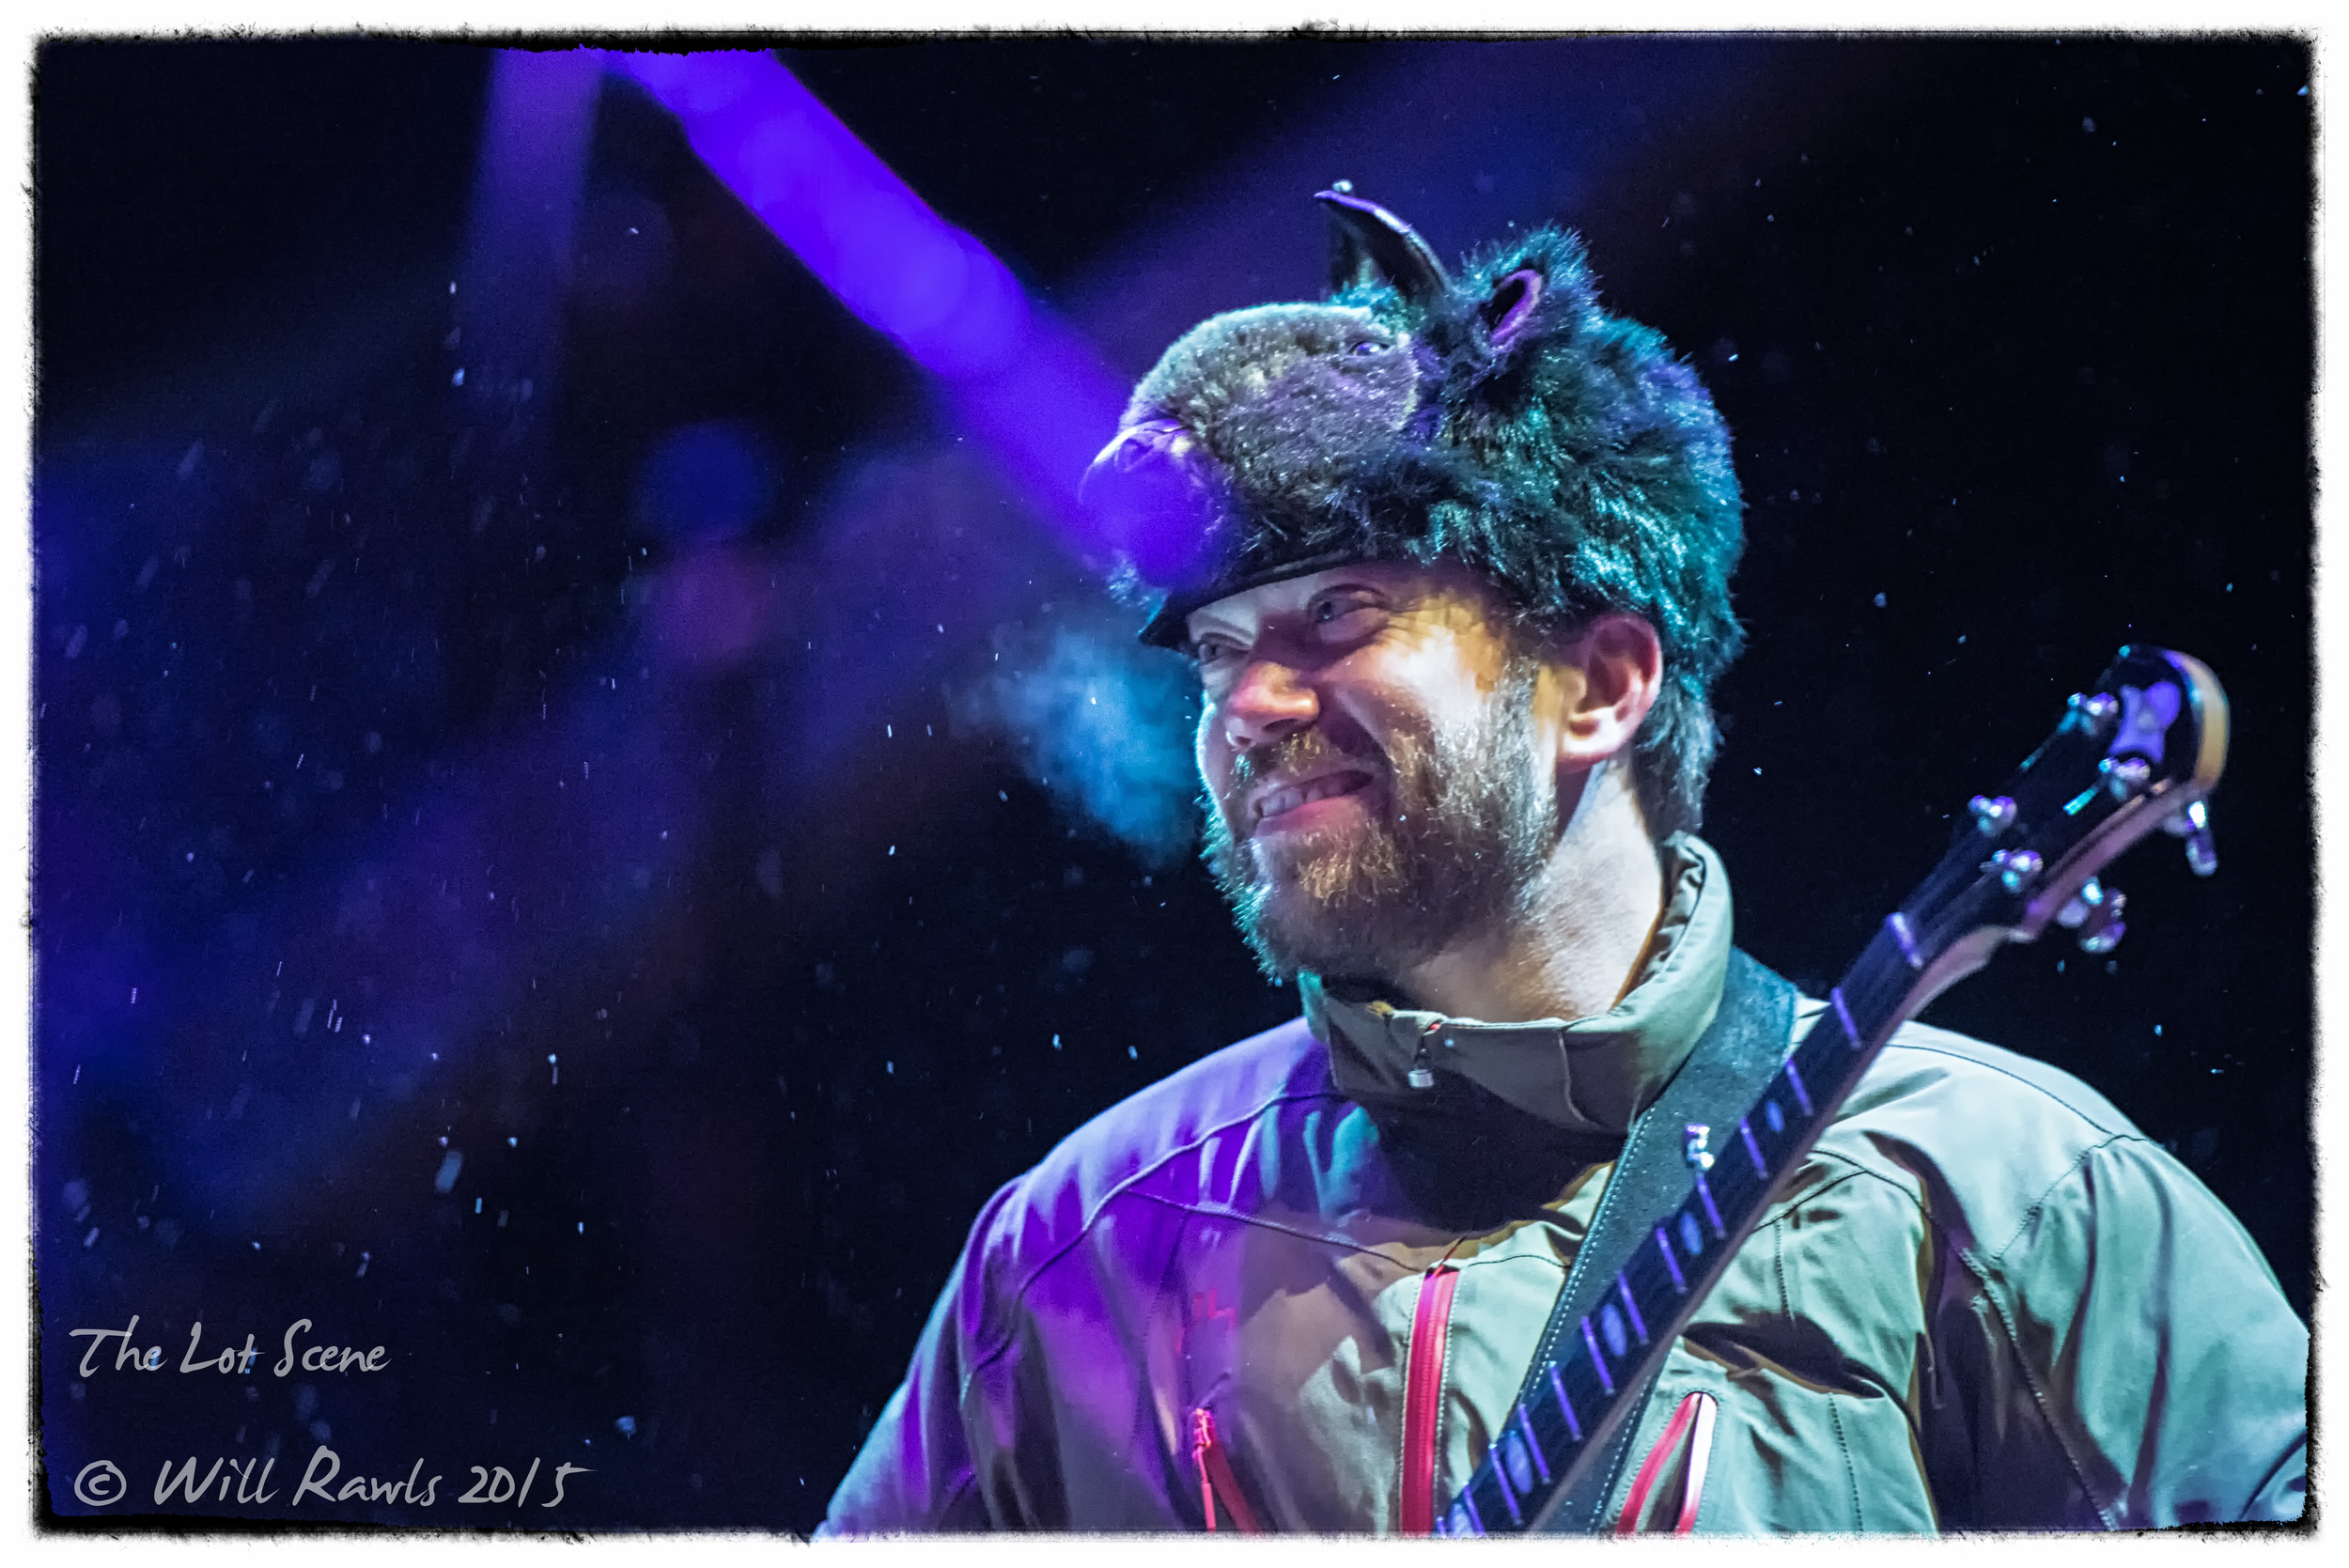 Andy Thorn of Leftover Salmon